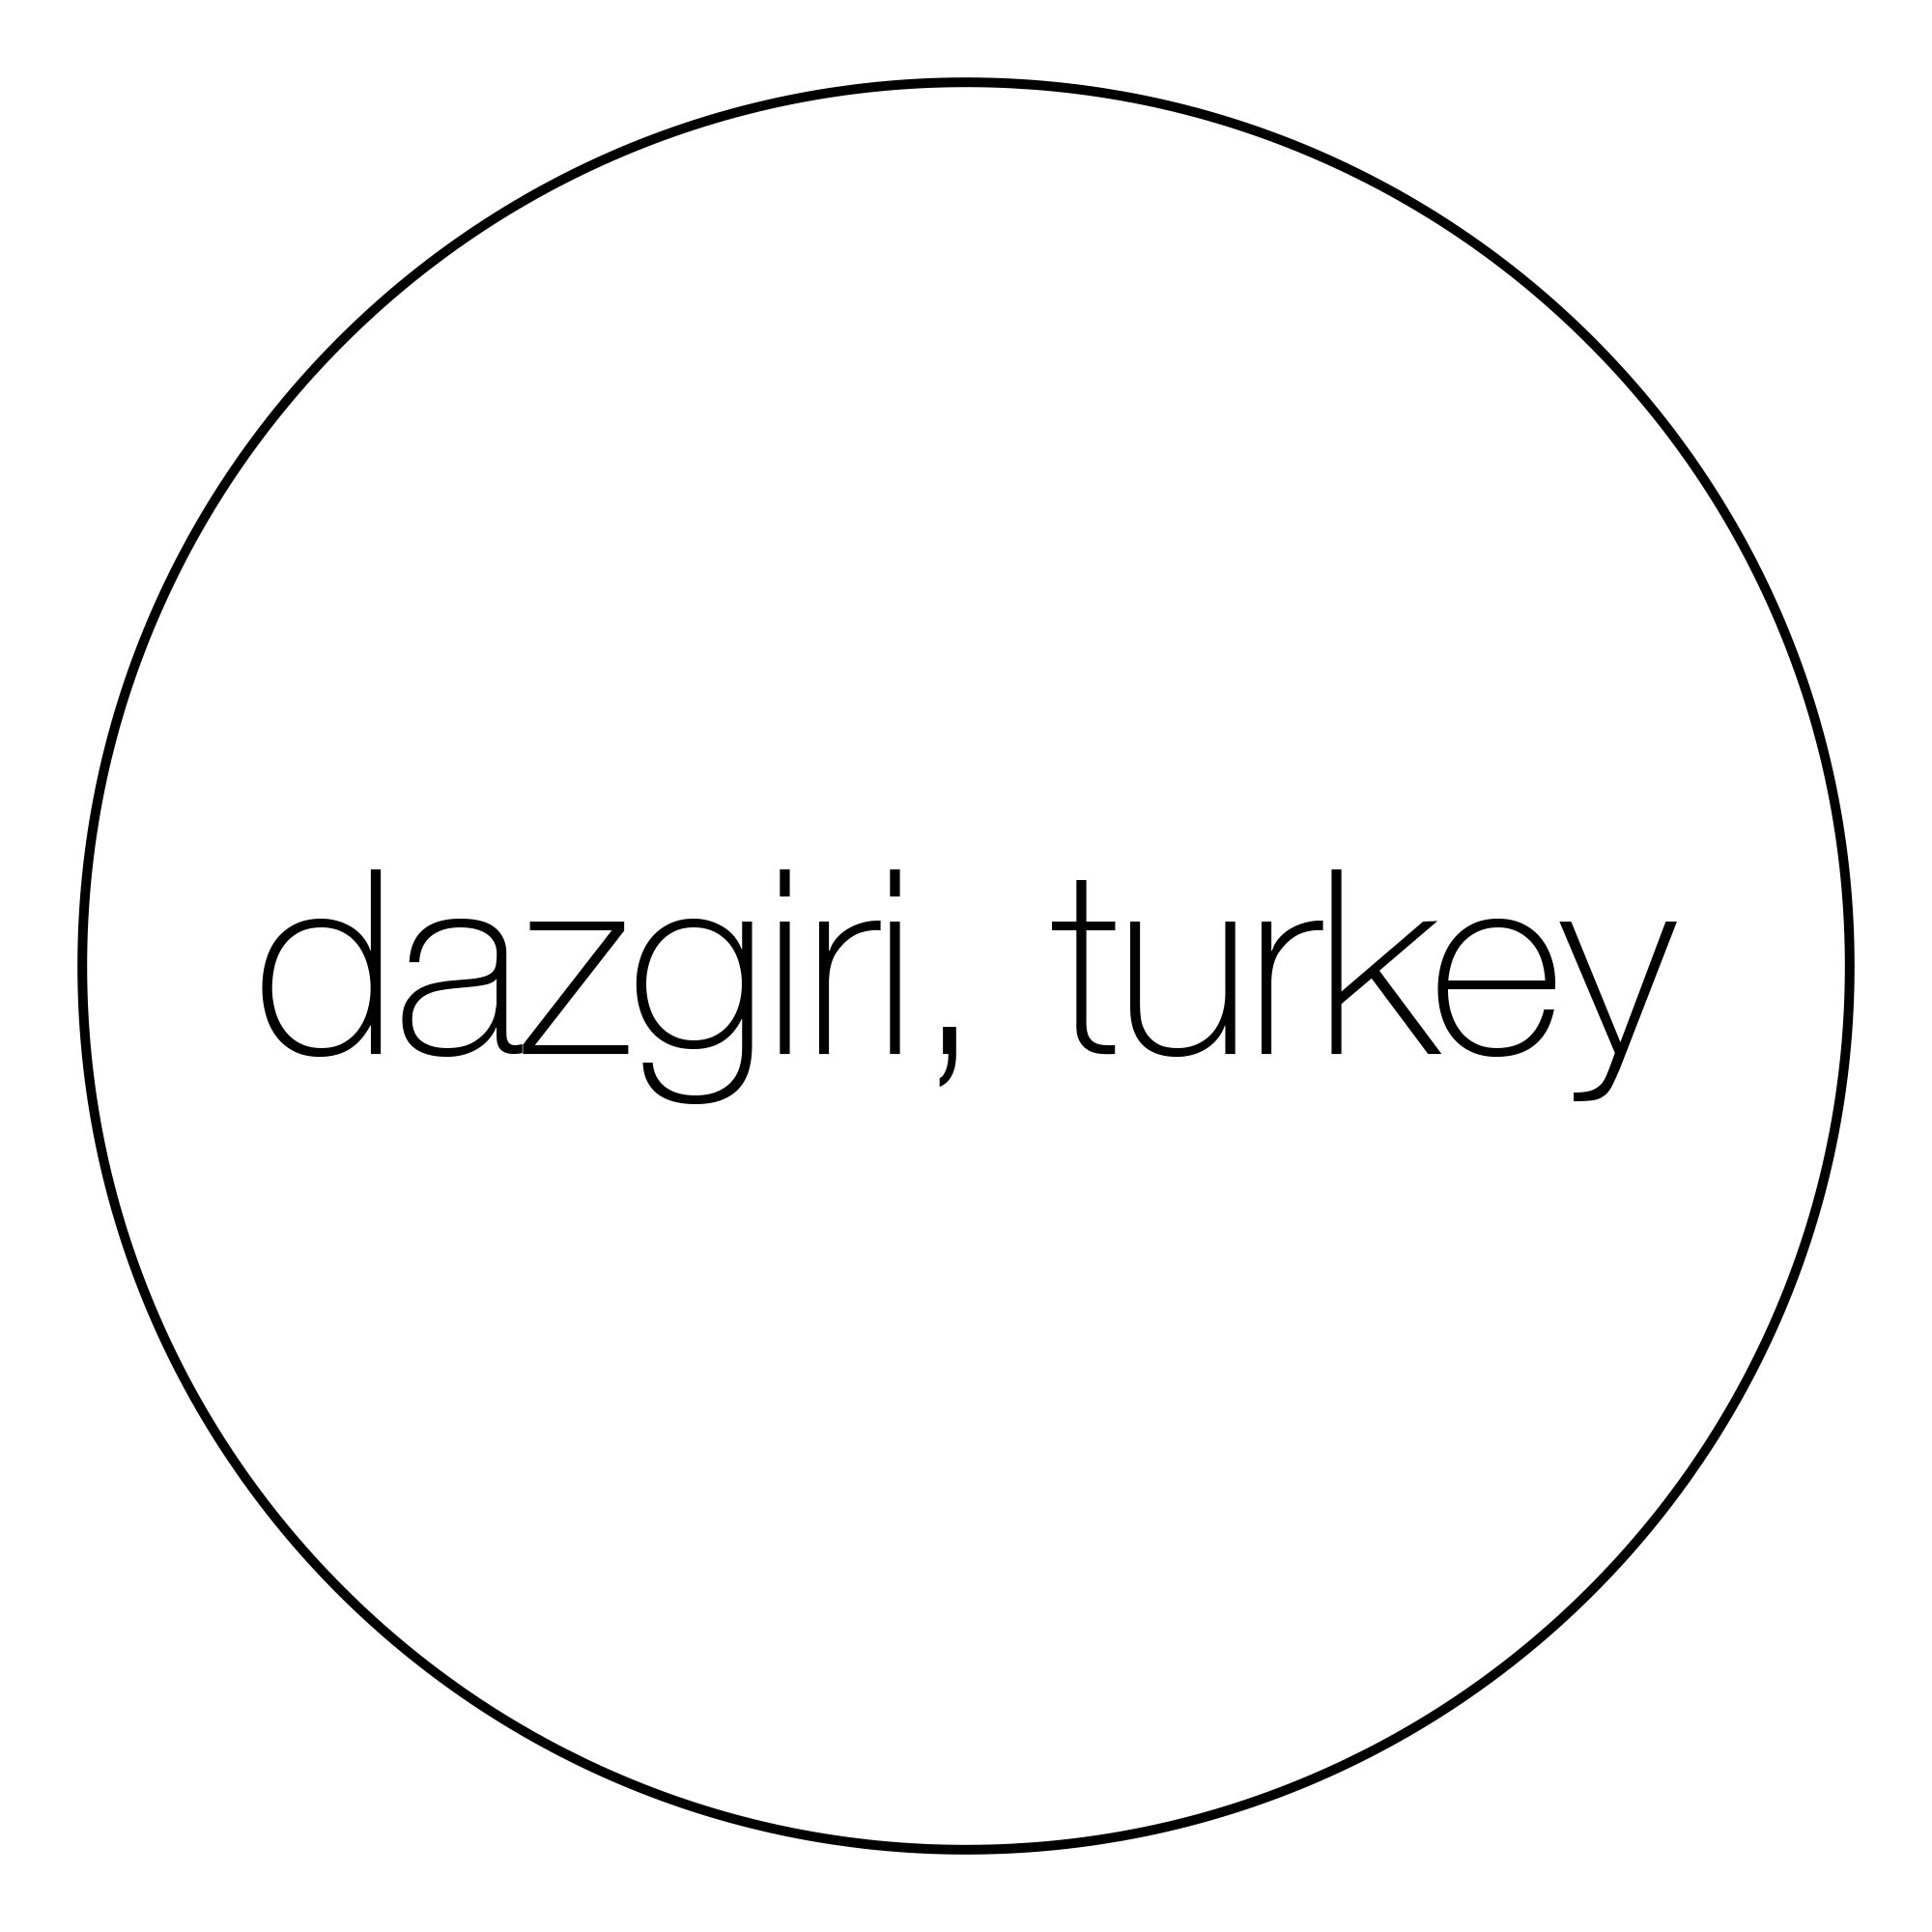 attribute-origin-dazgiri-turkey